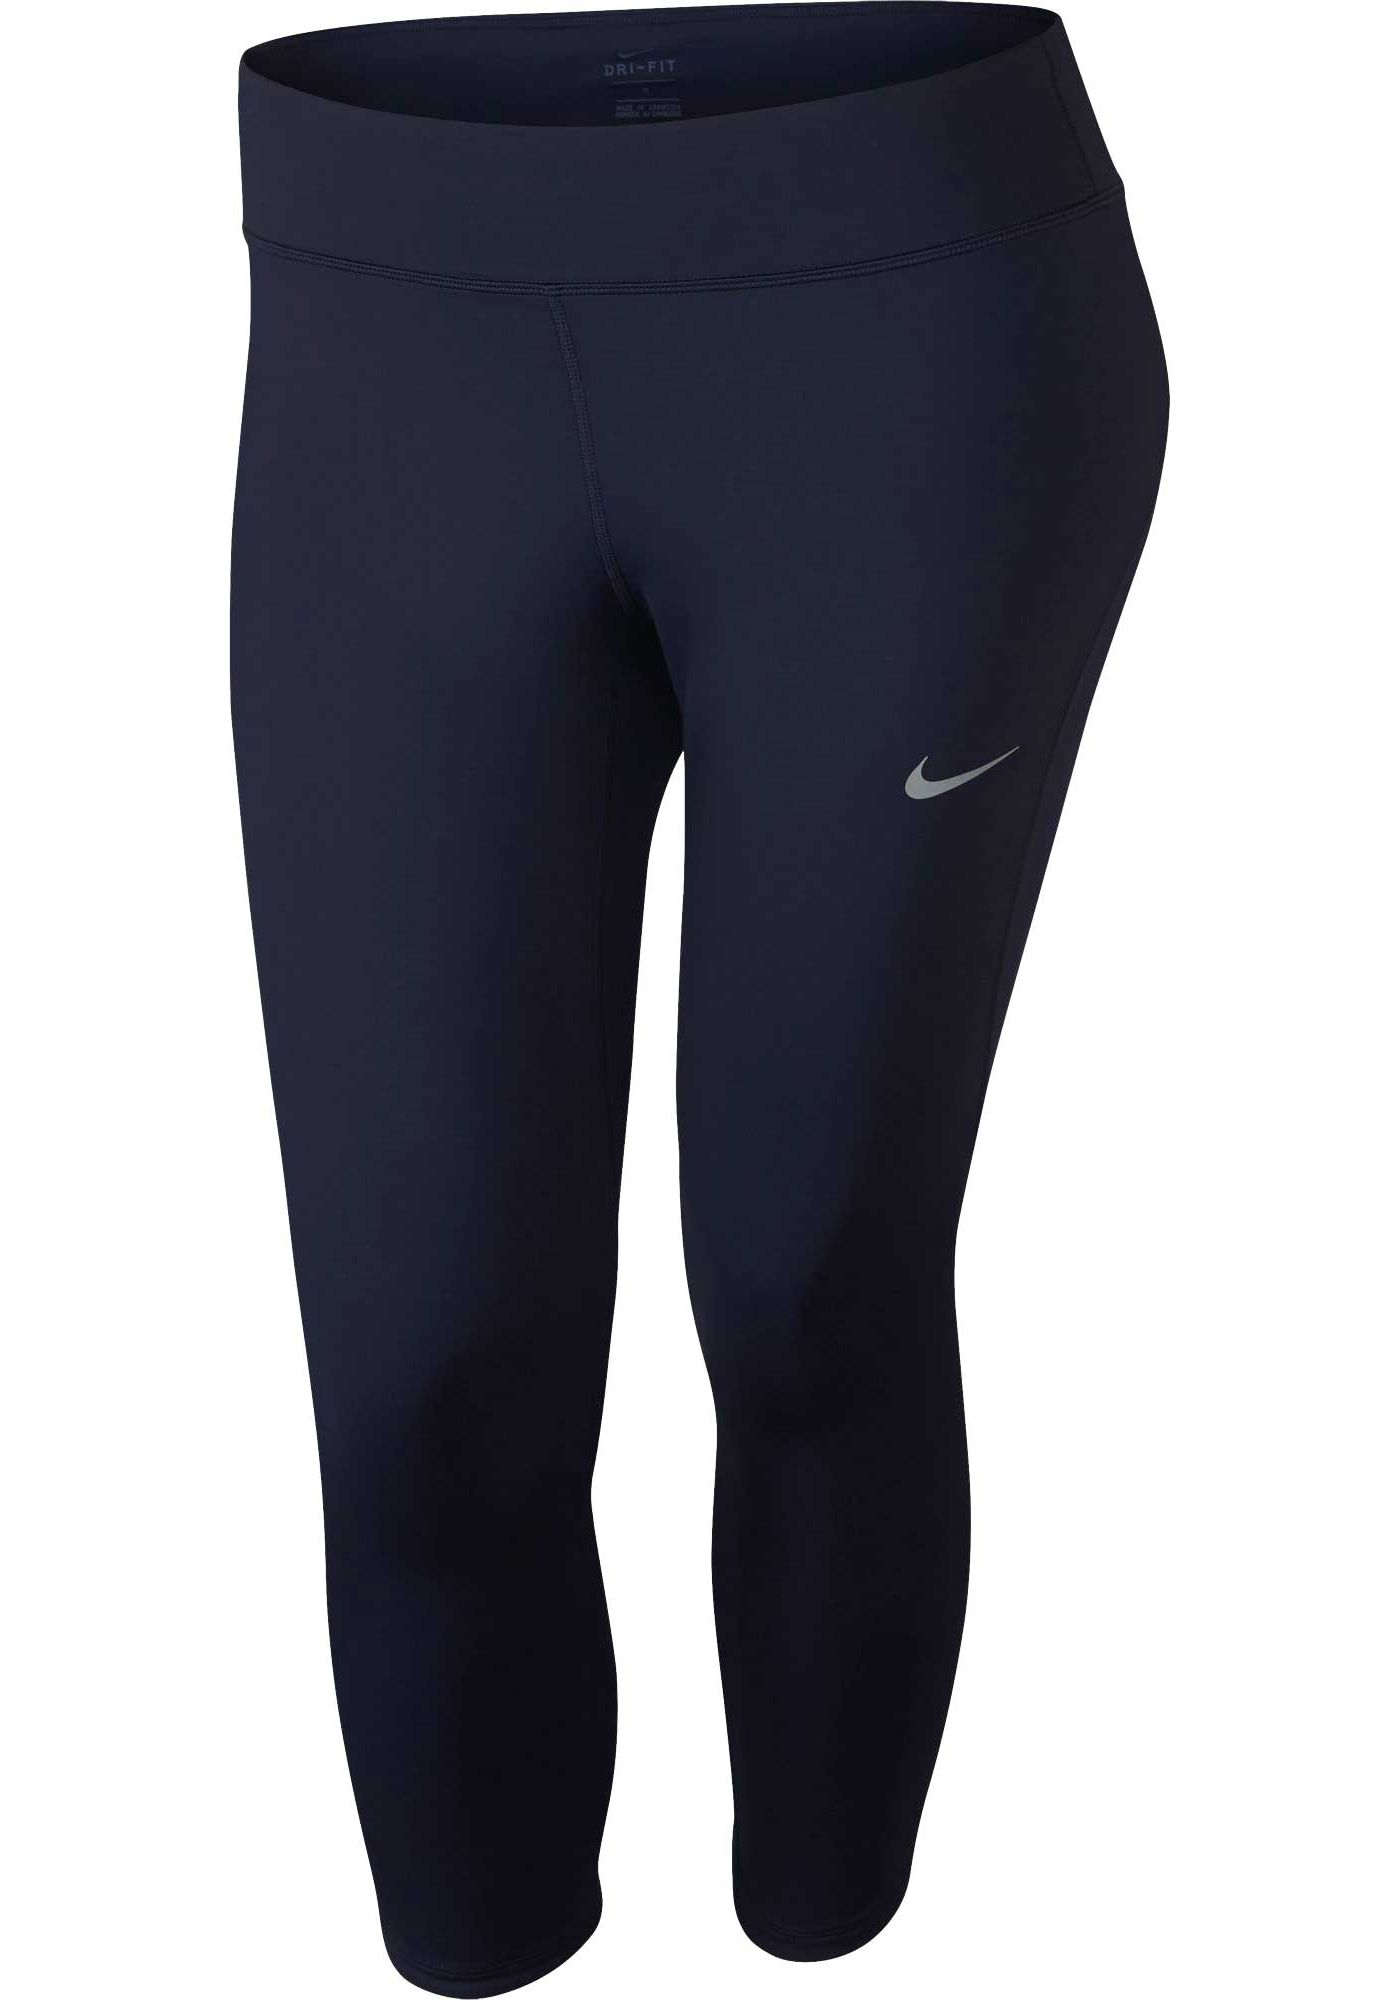 Nike Women's Plus Size Epic Lux Crop Running Tights